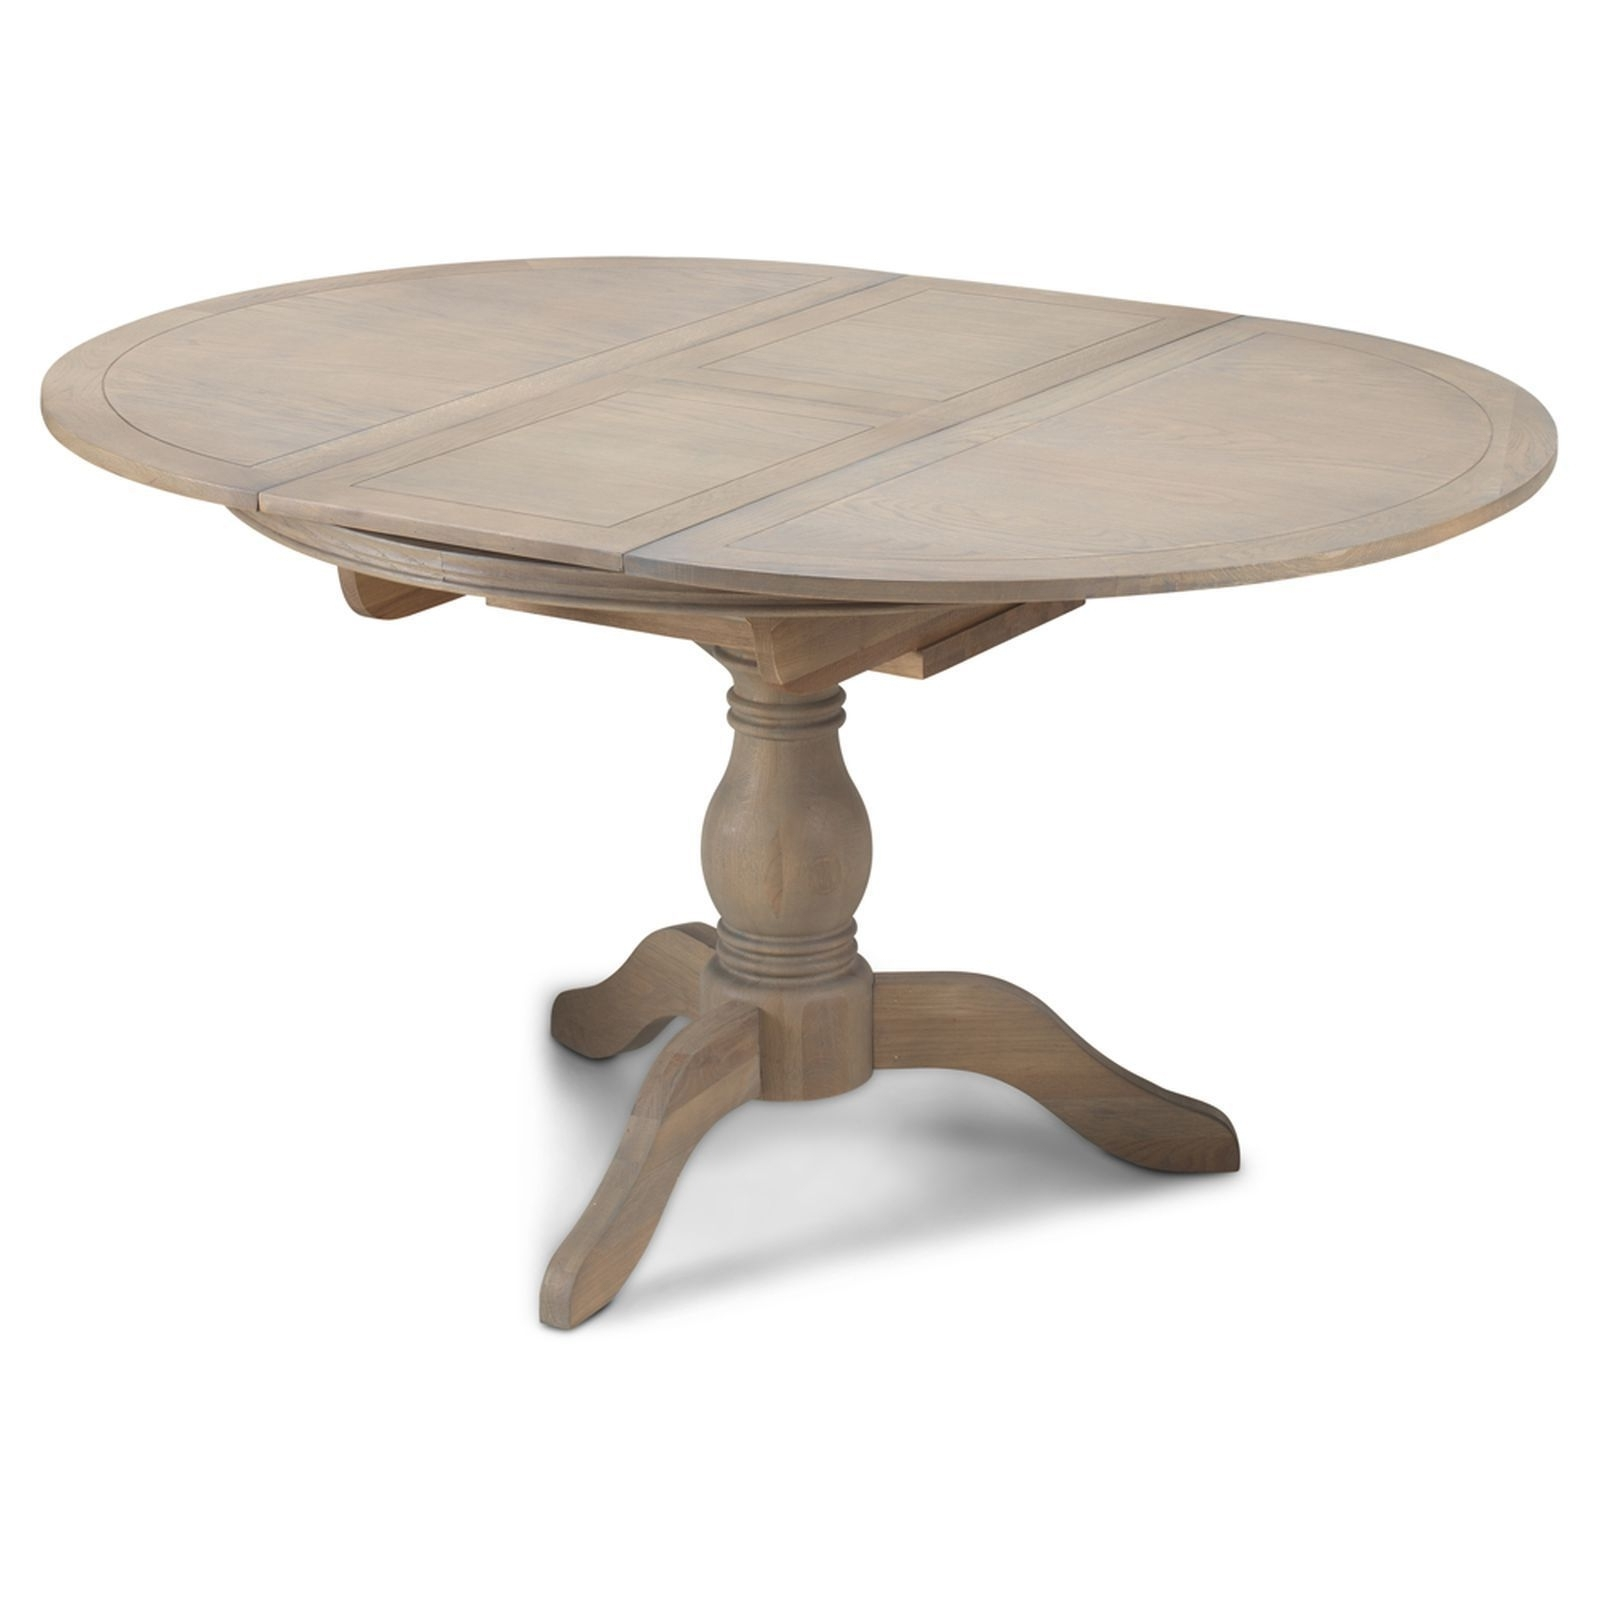 Circular Oak Dining Tables Regarding Most Popular Paloma Oak Furniture Grey Extending Round Circular Dining Table  (View 13 of 25)